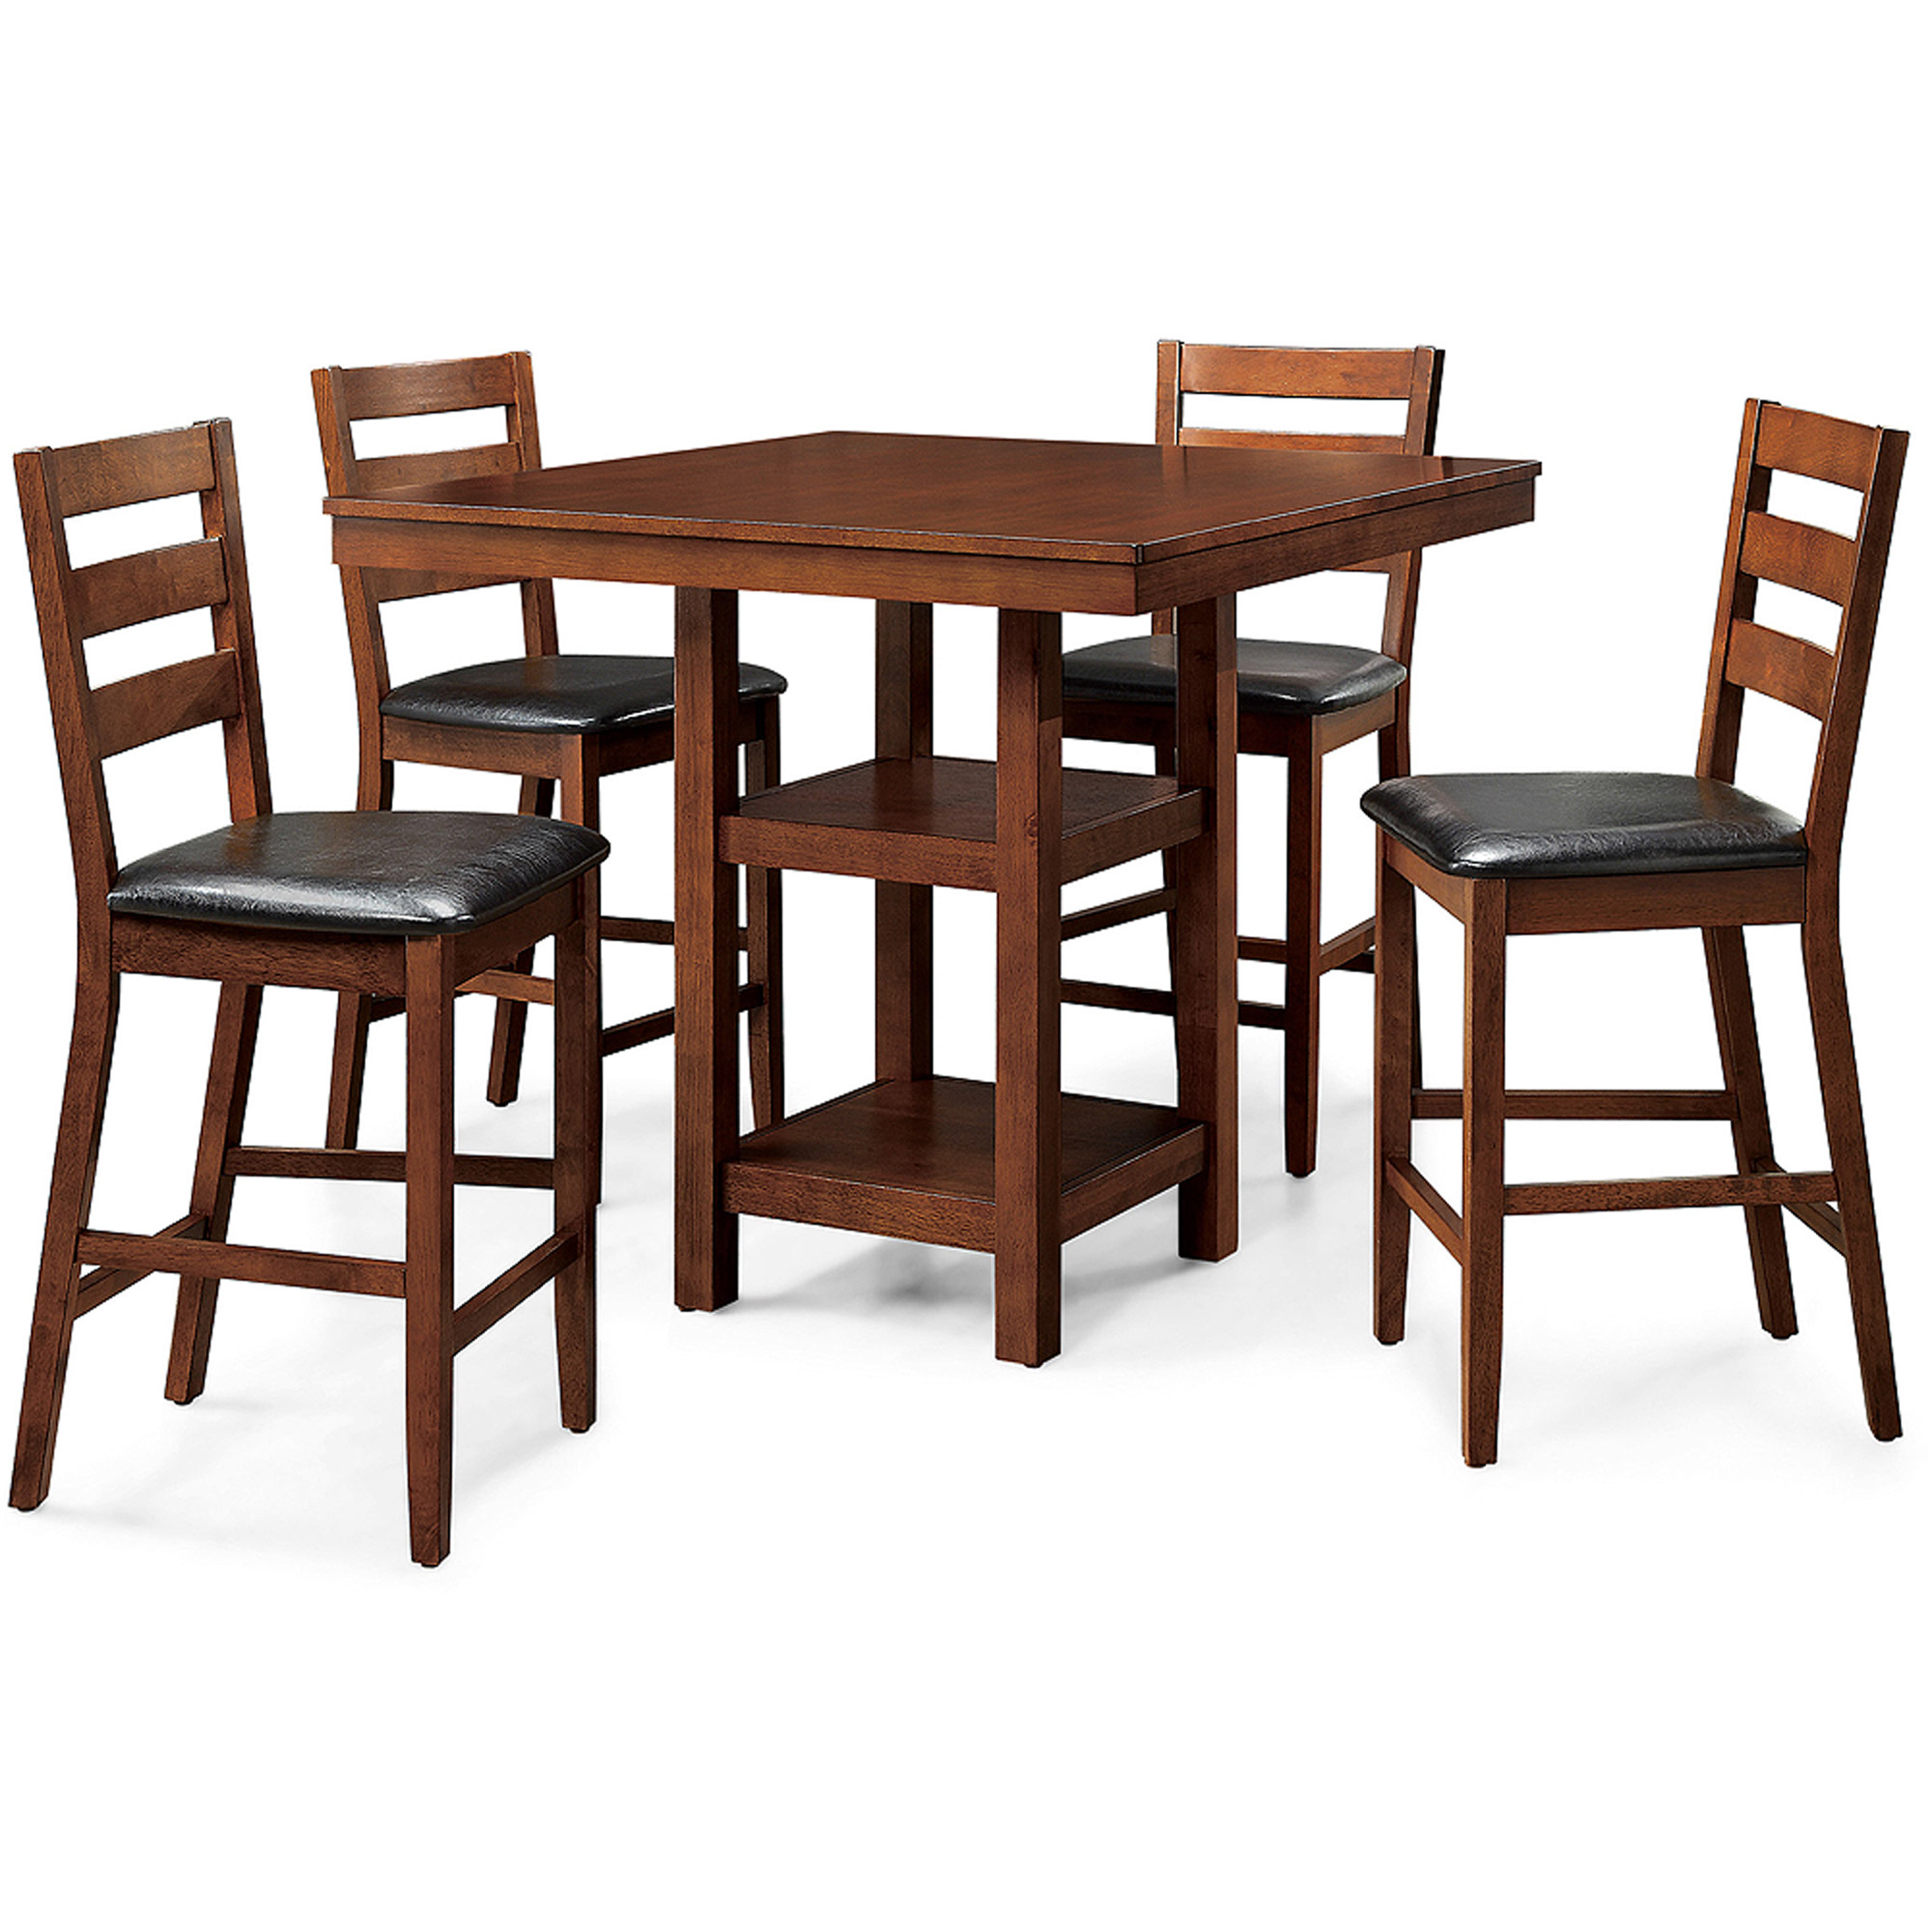 better homes and gardens dalton park 5piece counter height dining set mocha image